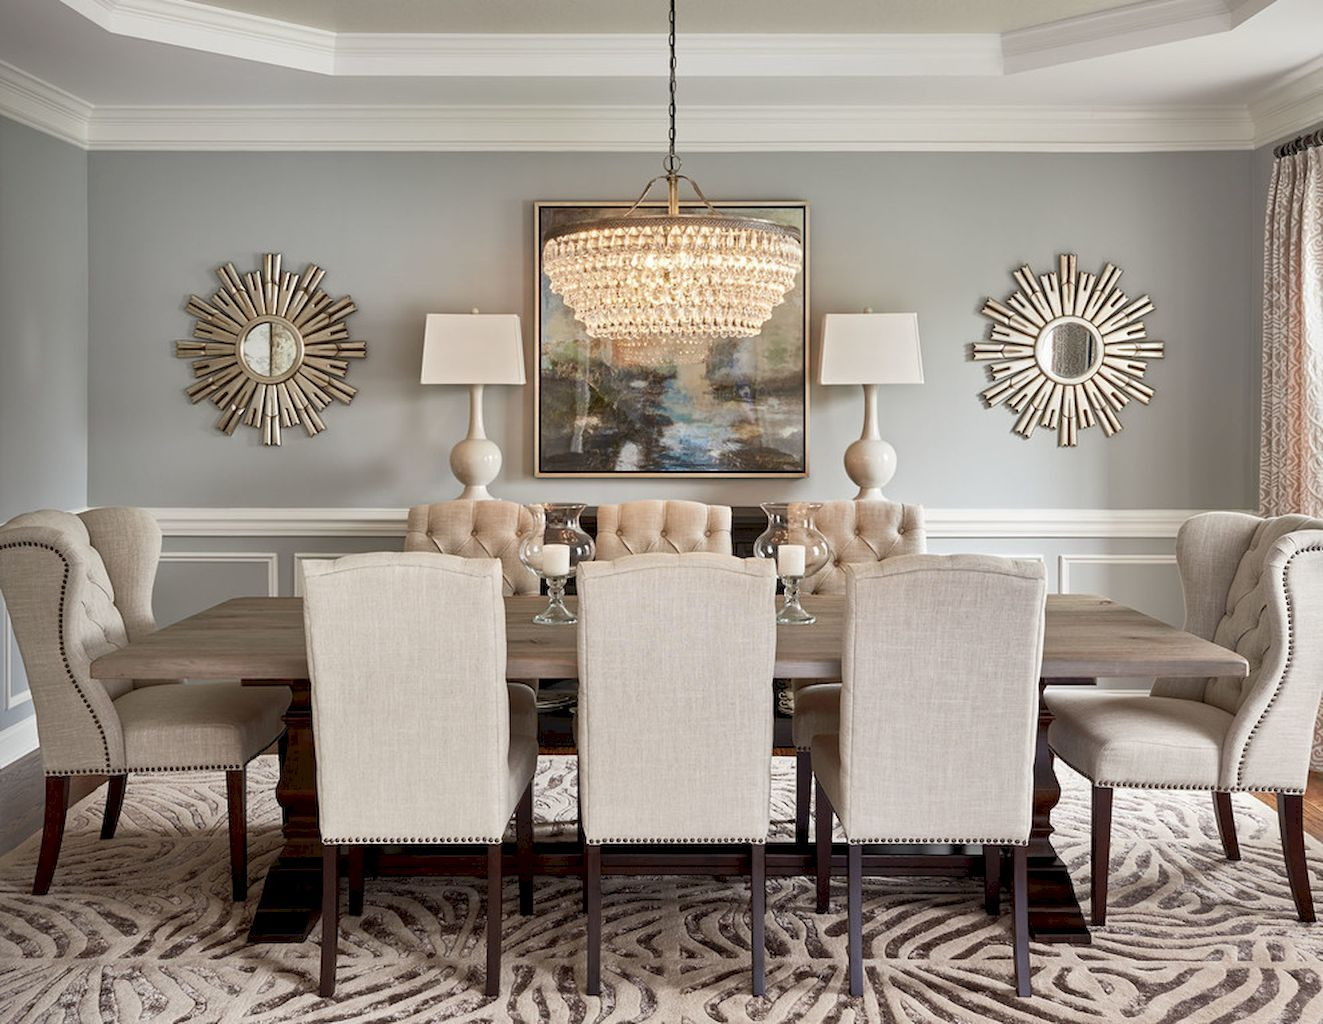 Awesome 110 Beautiful And Elegant Dining Room Chandelier Lighting Ideas Livinking